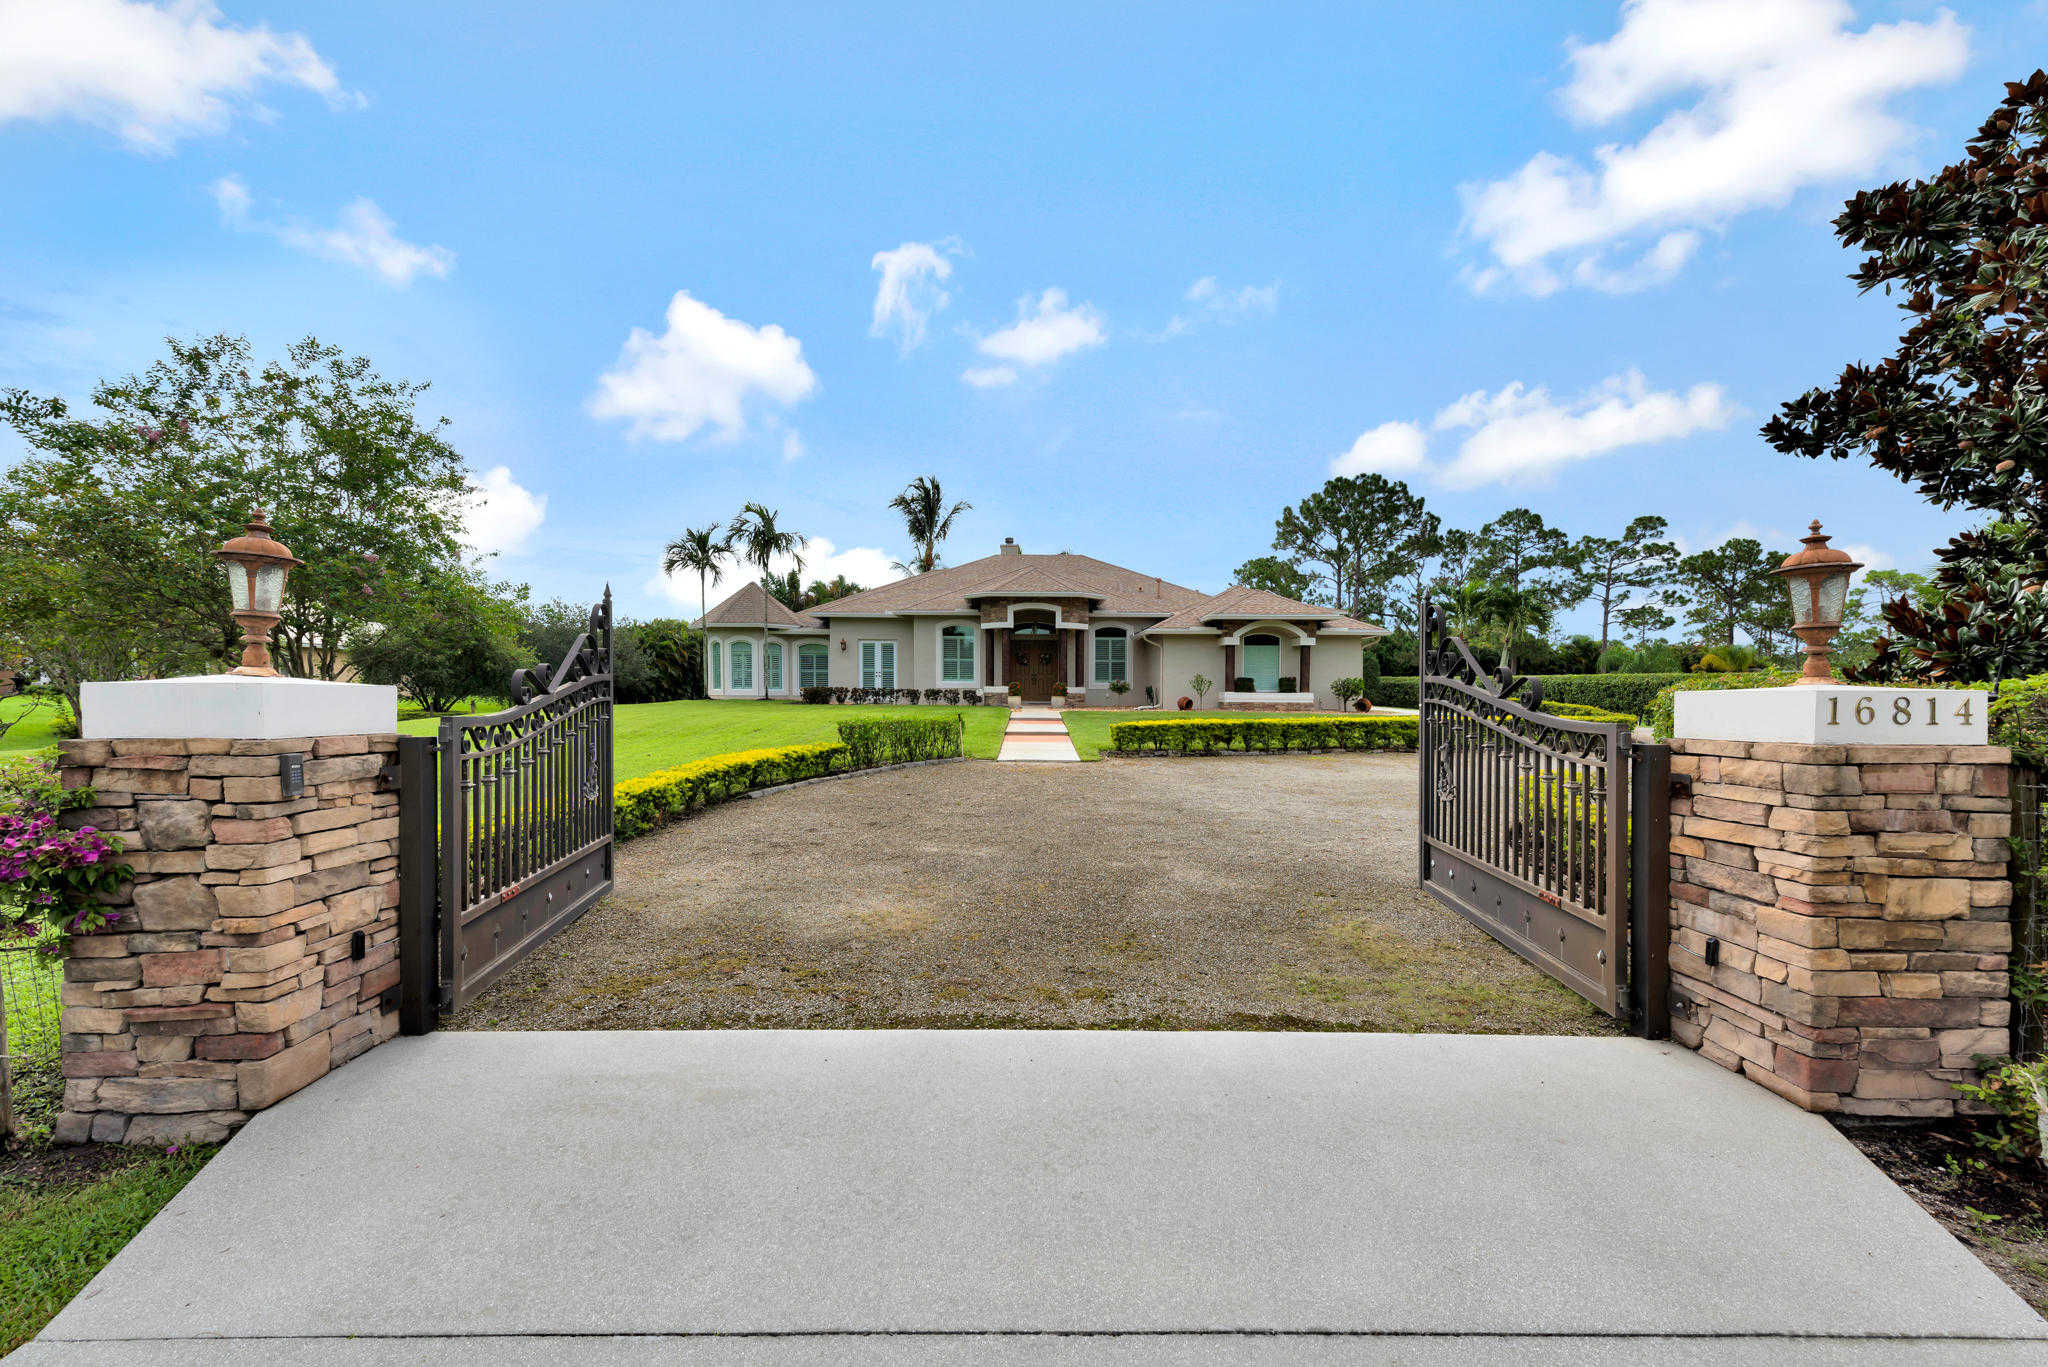 16814 Mellen Lane, Jupiter, FL 33478 now has a new price of $858,900!